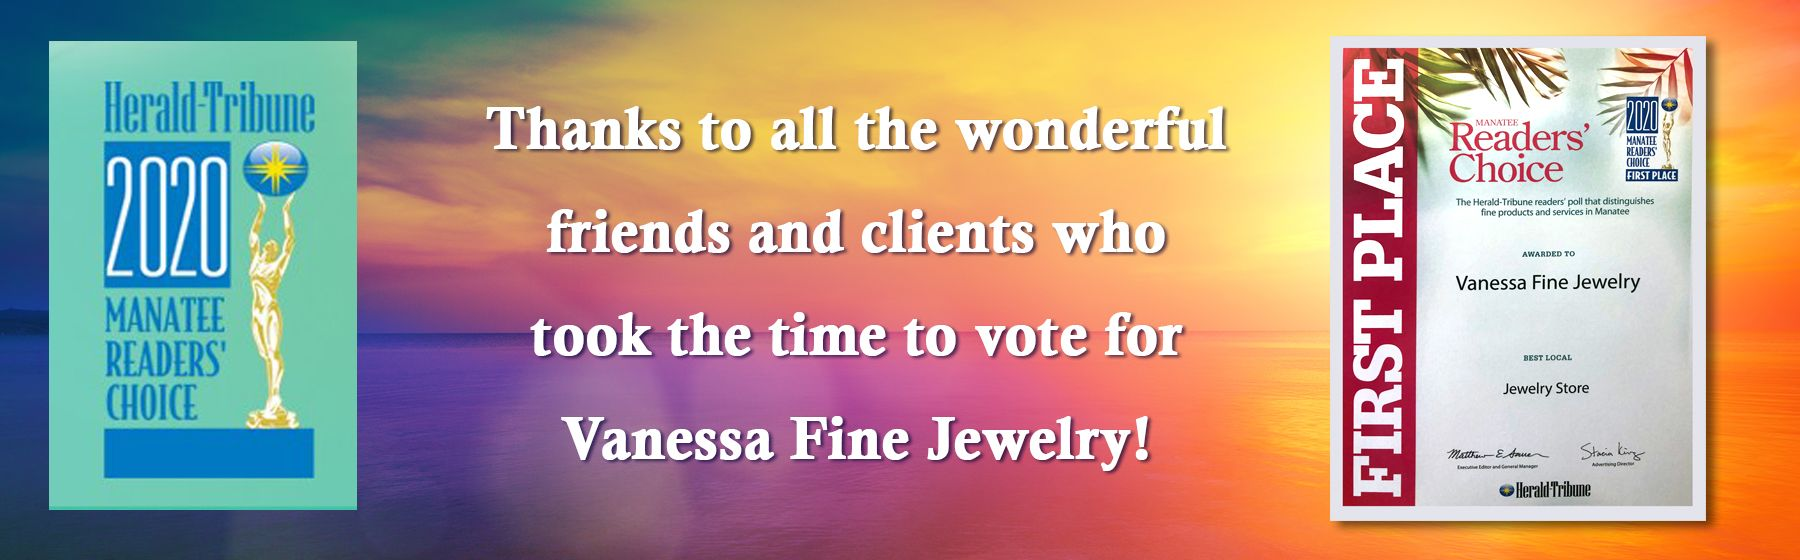 Best Jewelry Store in Manatee County 2020